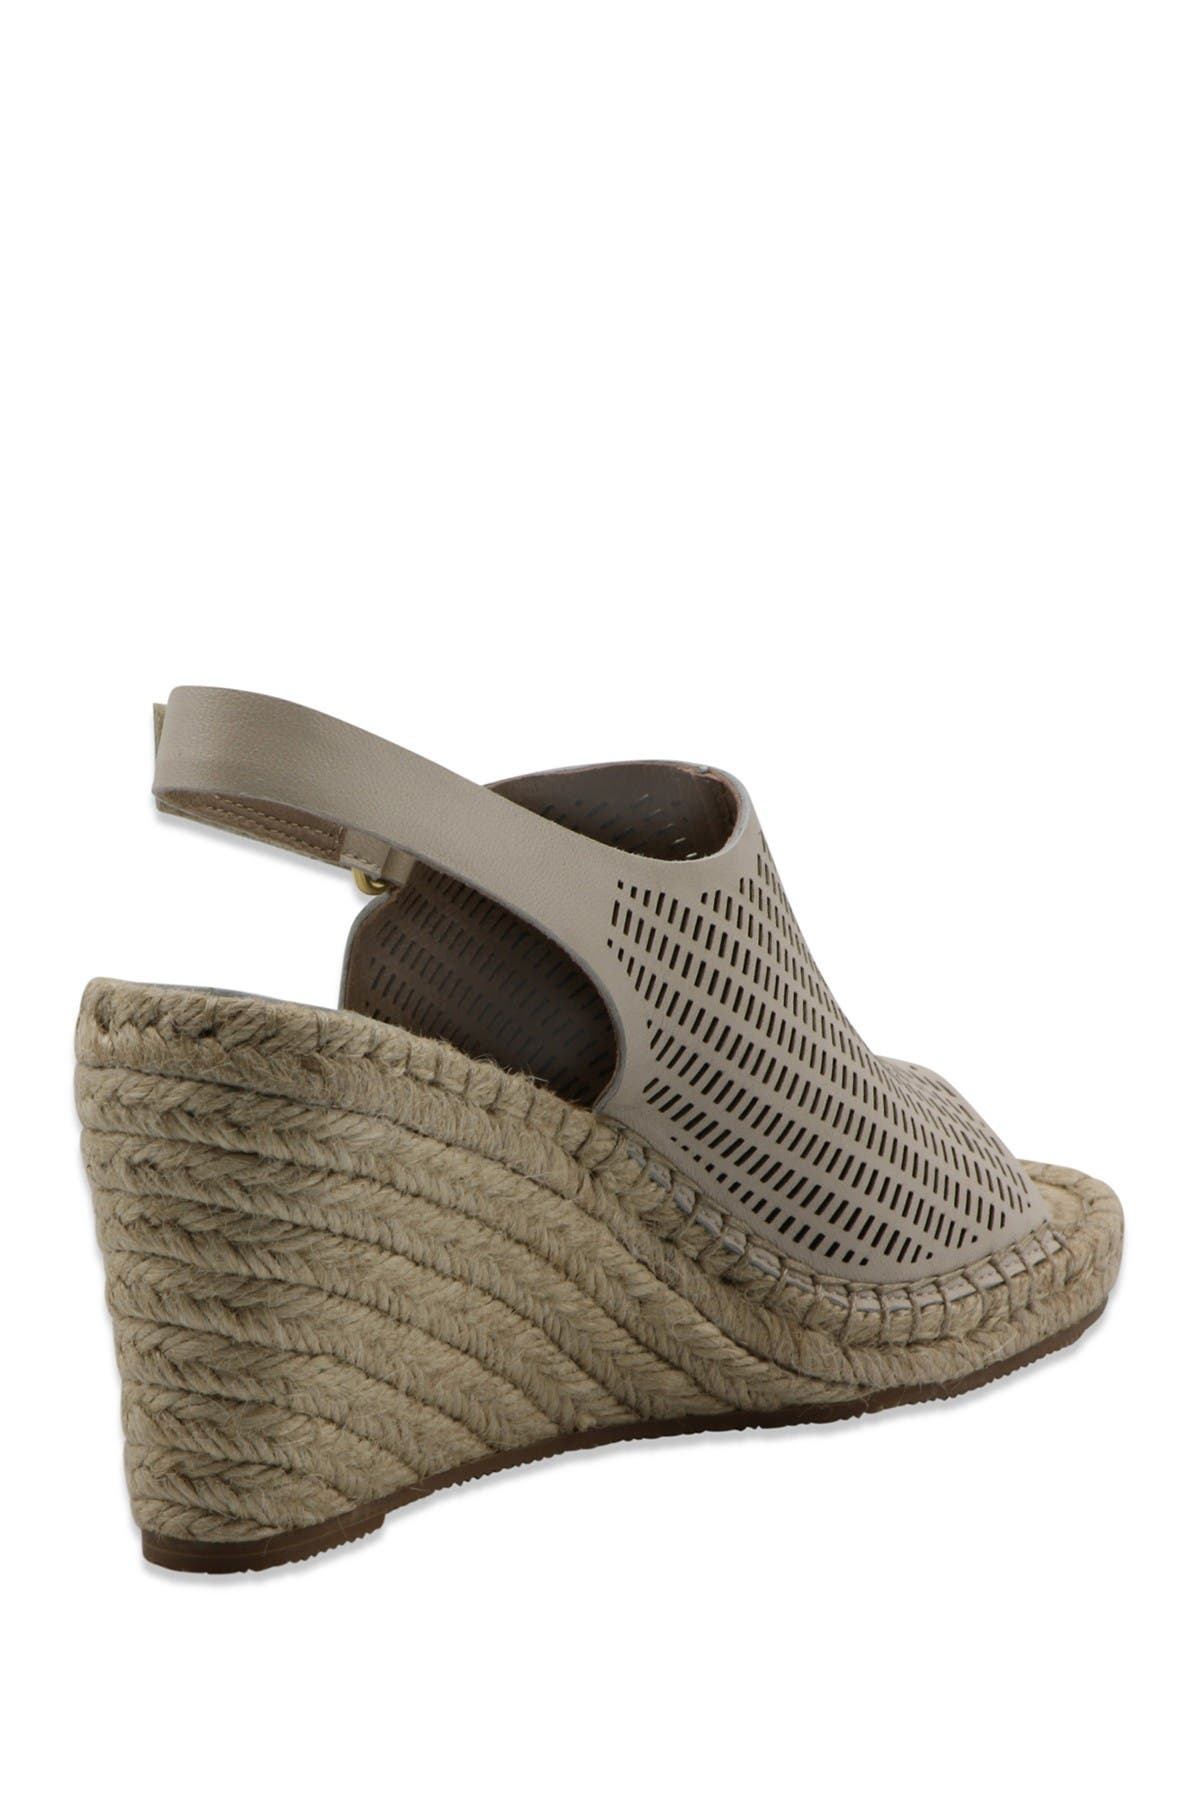 Image of Bettye Muller Vincent Leather Espadrille Wedge Sandal